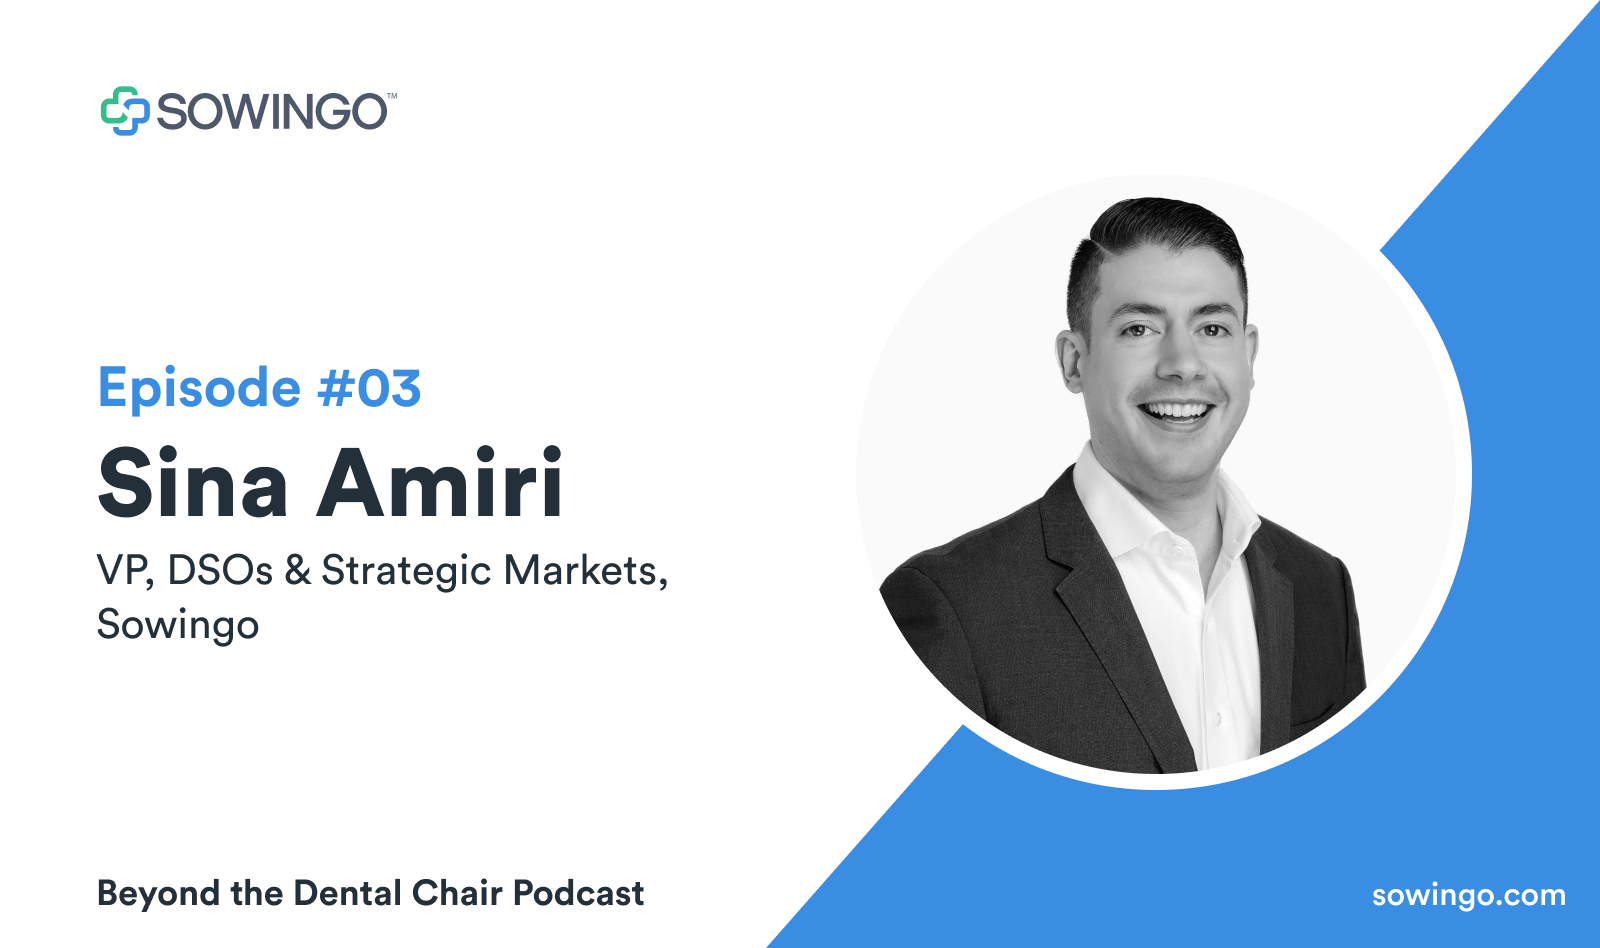 Beyond the dental podcast with Sina Amiri